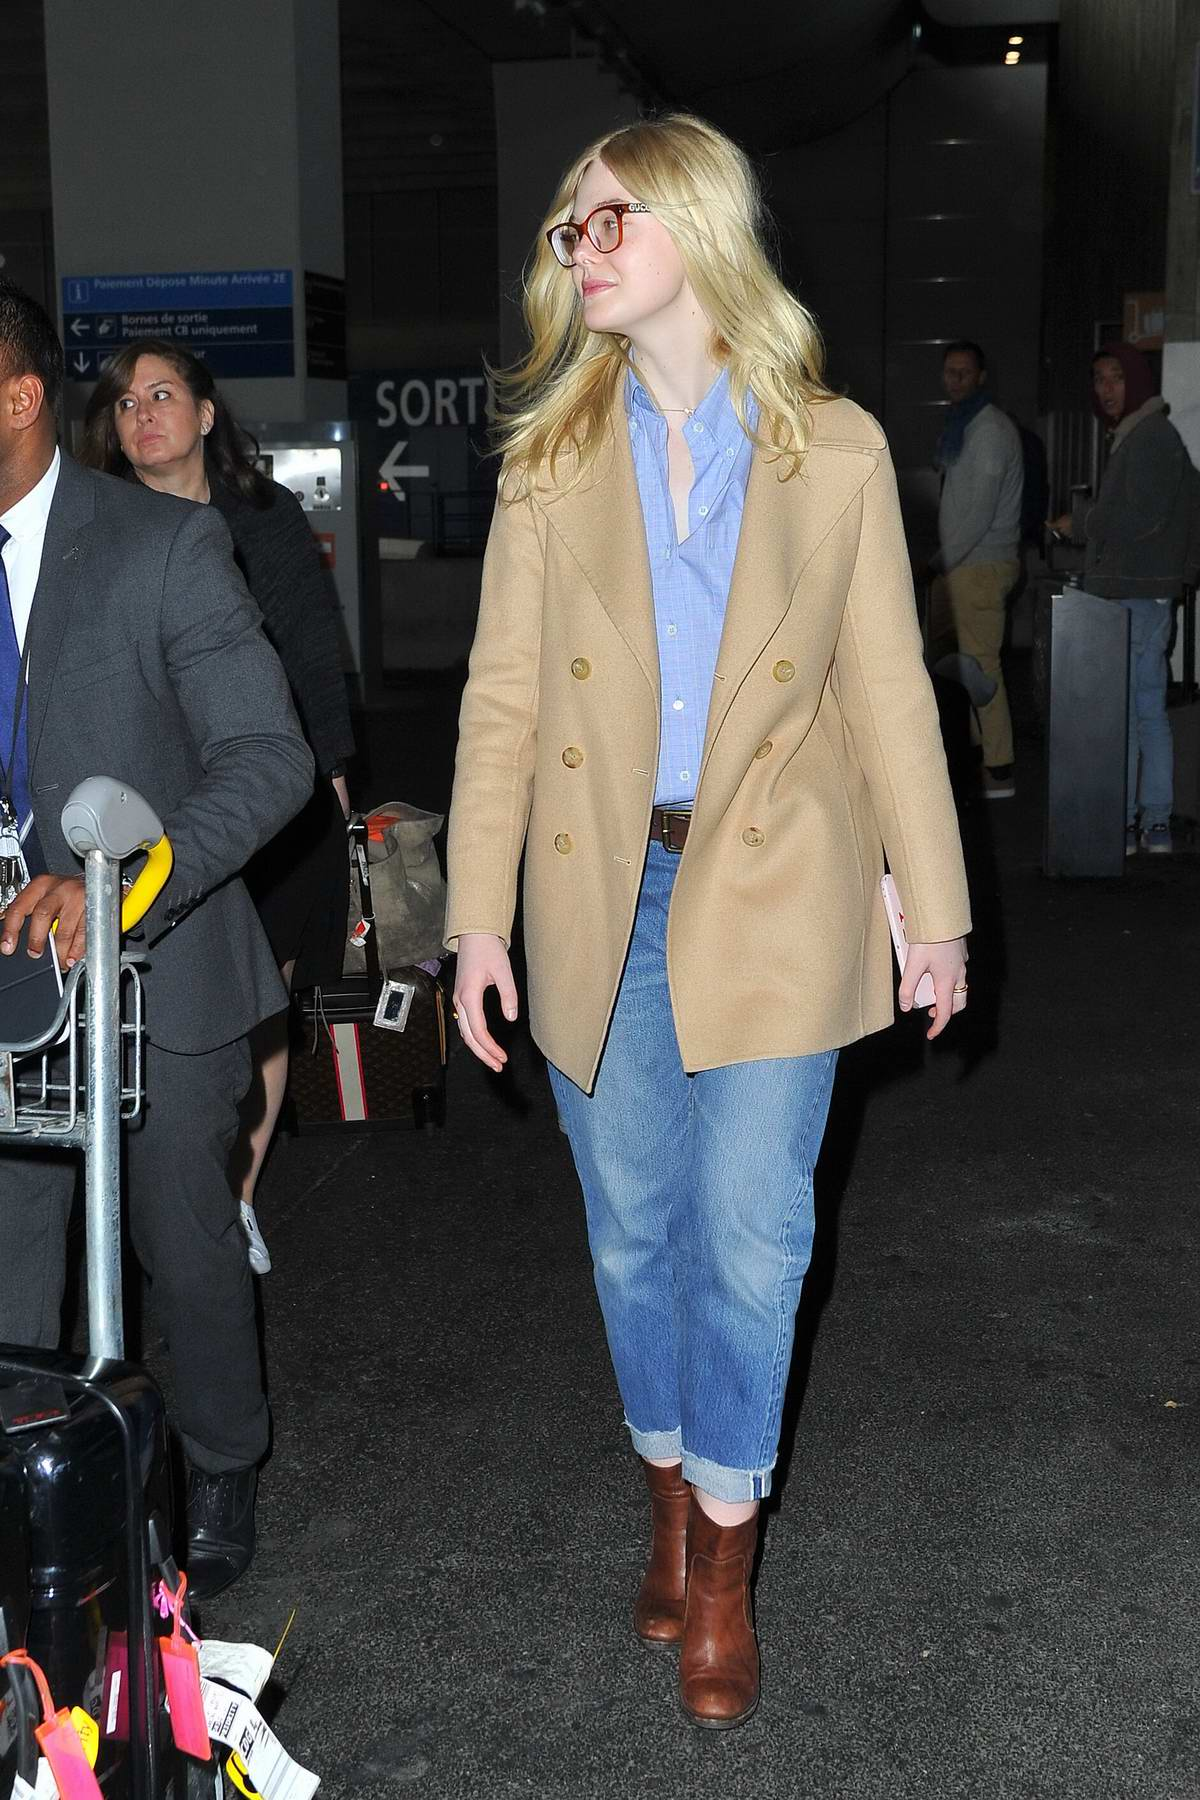 b709e3f0195211 elle fanning sports gucci glasses paired with a tan blazer, blue shirt,  jeans and brown boots as she arrives at the cdg airport in paris,  france-030319_10